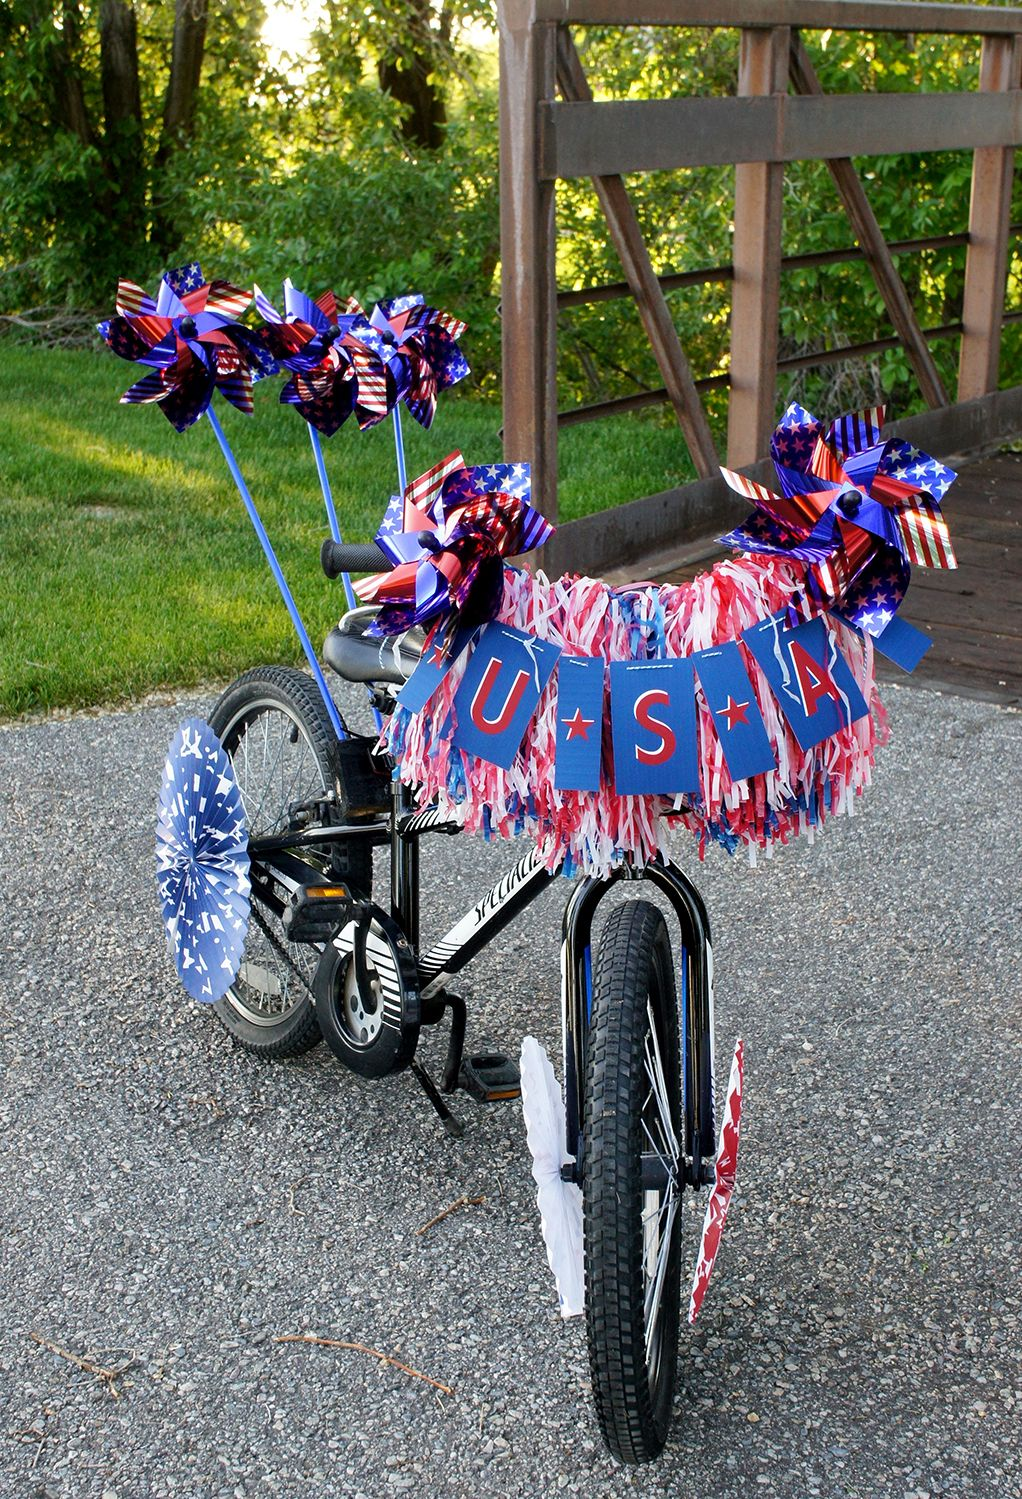 Patriotic Bike Decoration Idea   4th of July DIY   Pinterest   Free     Patriotic Kids Bike and FREE Printable USA banner